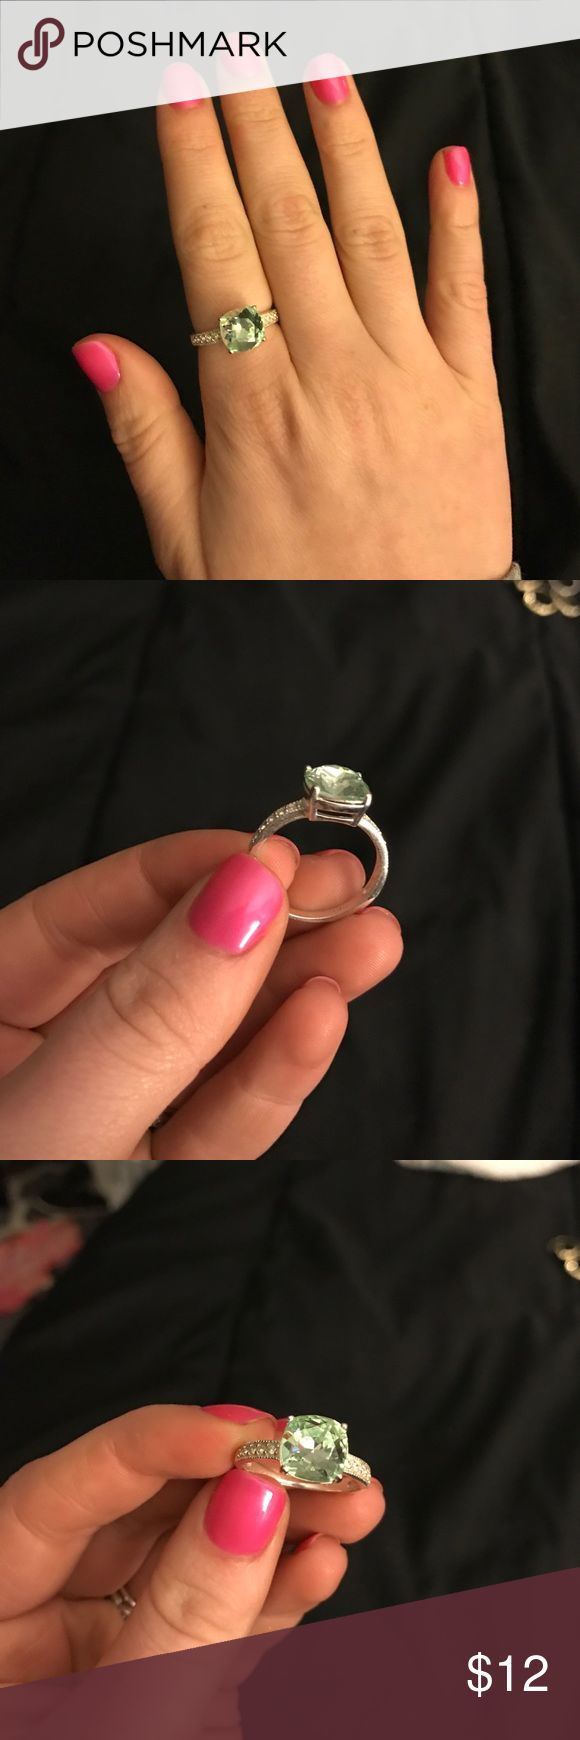 Peridot ring Cushion cut peridot ring Jewelry Rings